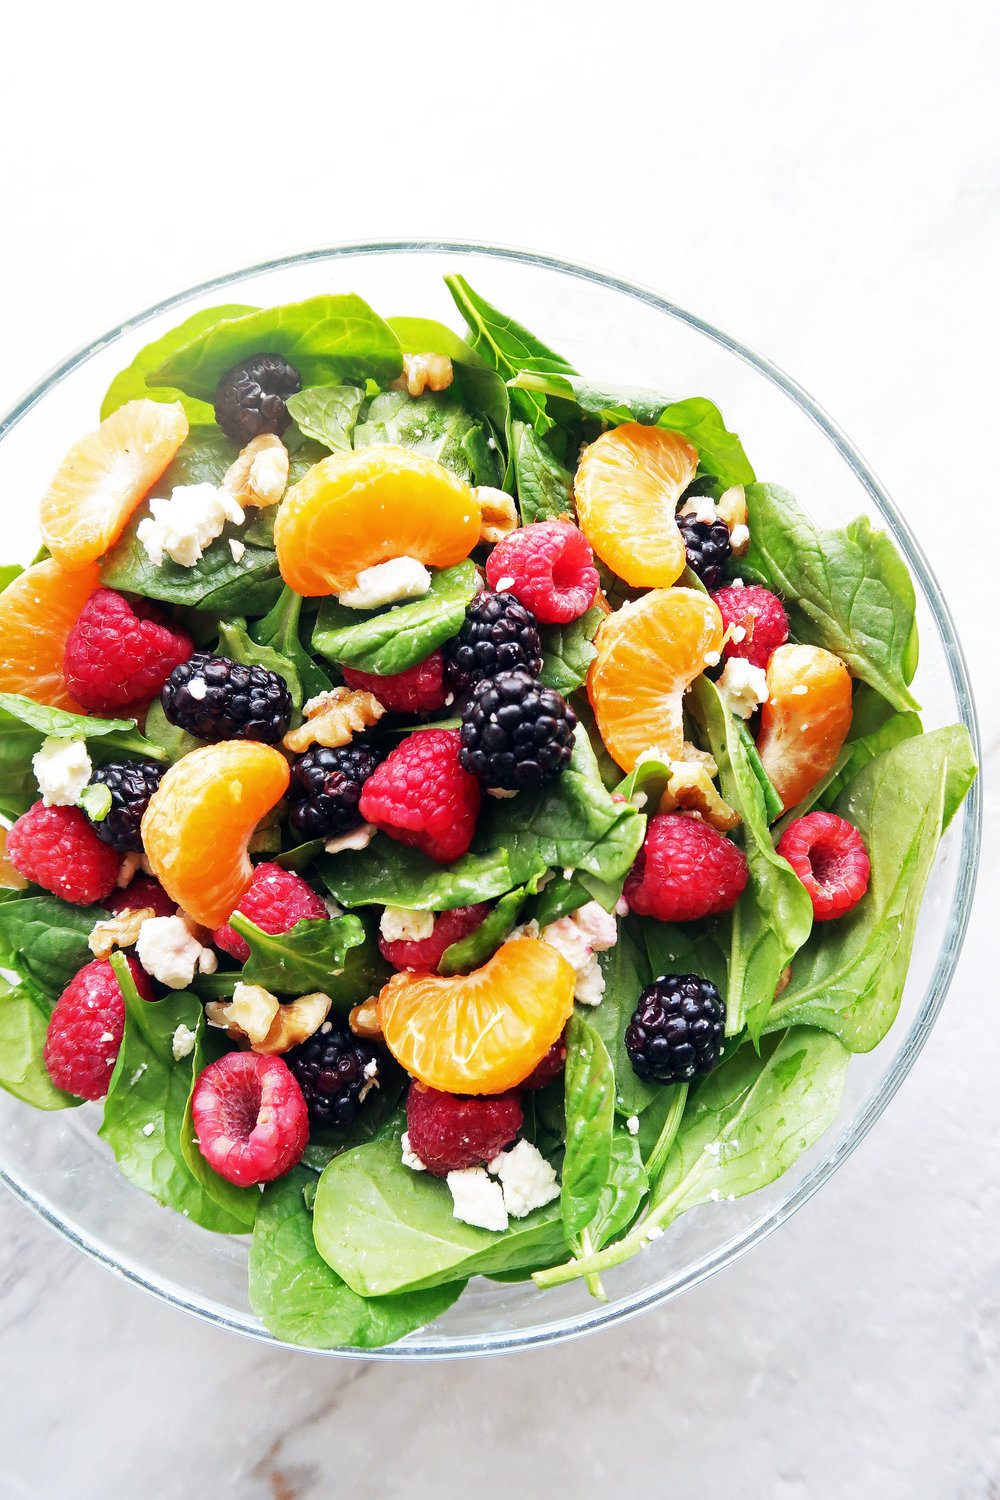 https://www.yayforfood.com/recipes/berry-orange-spinach-salad-citrus-balsamic-vinaigrette